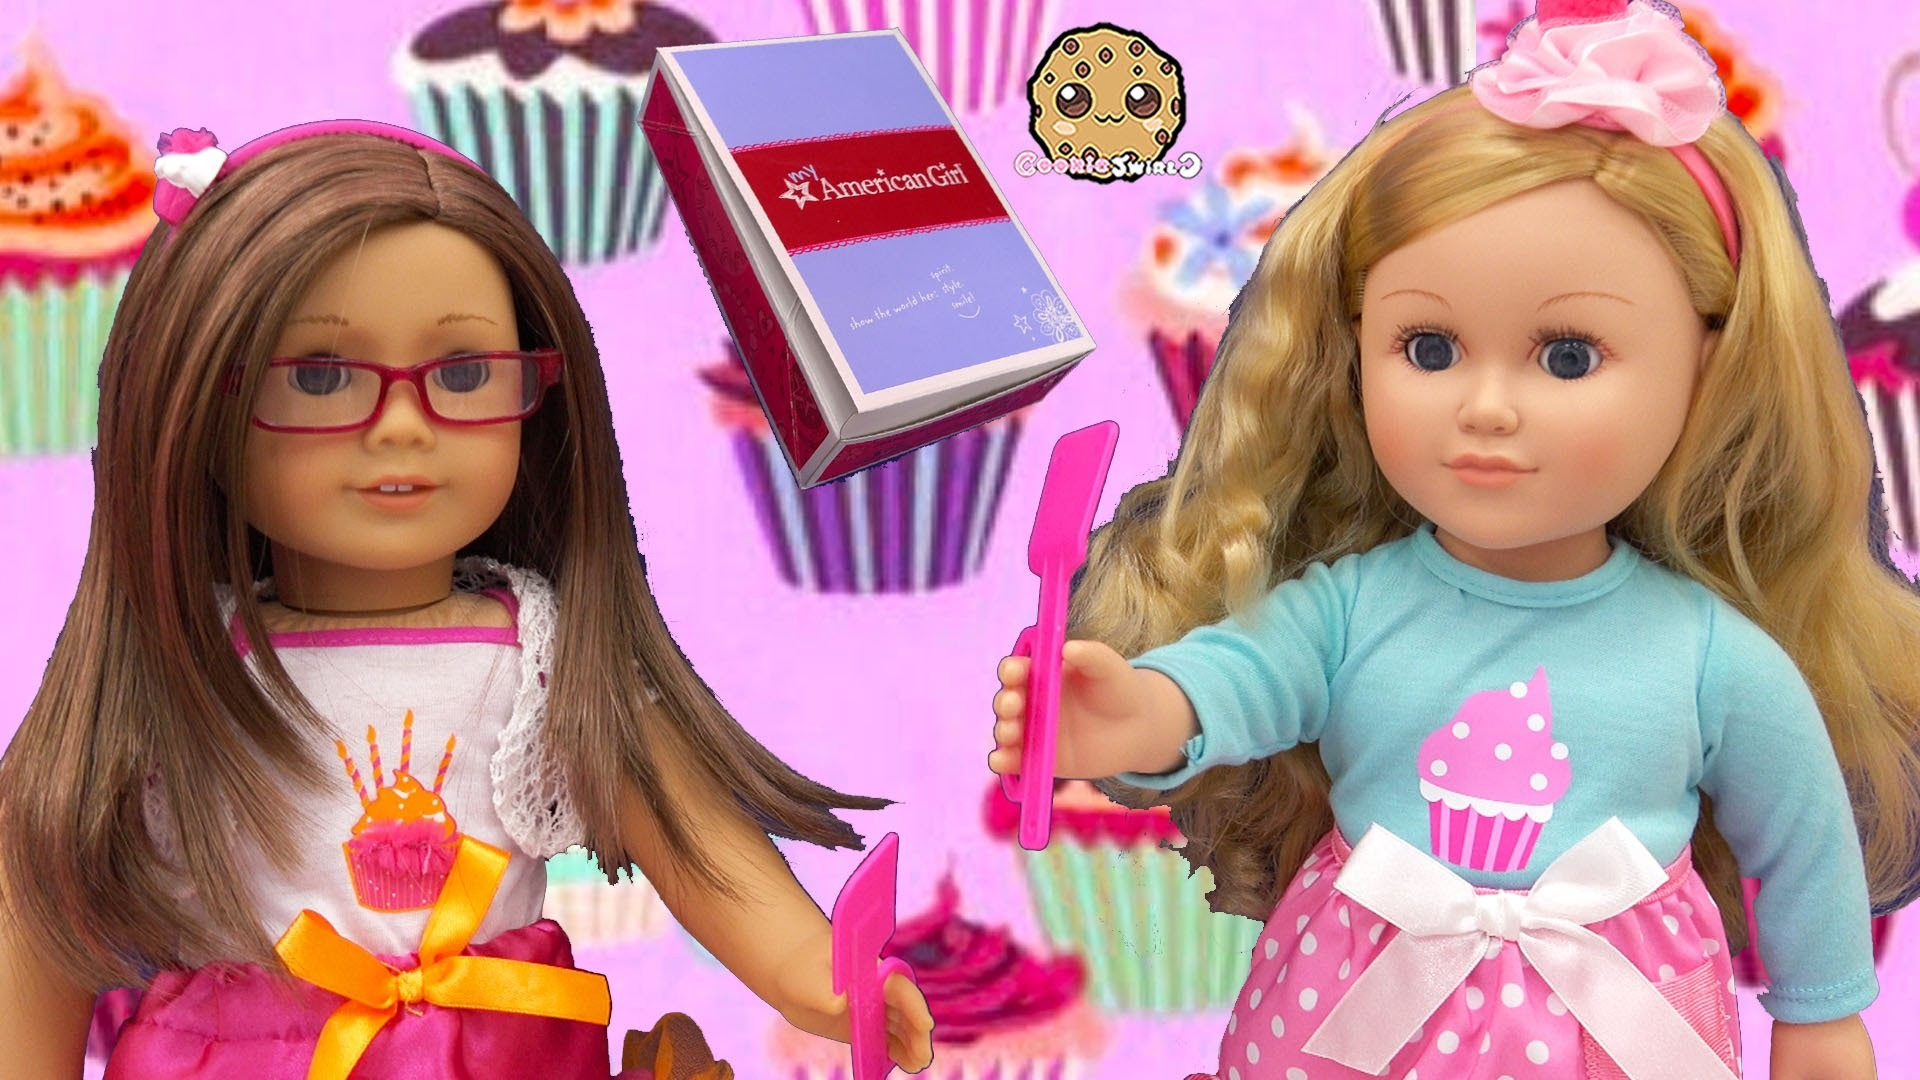 American Girl Doll Happy Birthday Outfit Clothing + My Life As Cupcake  Baker Review – YouTube